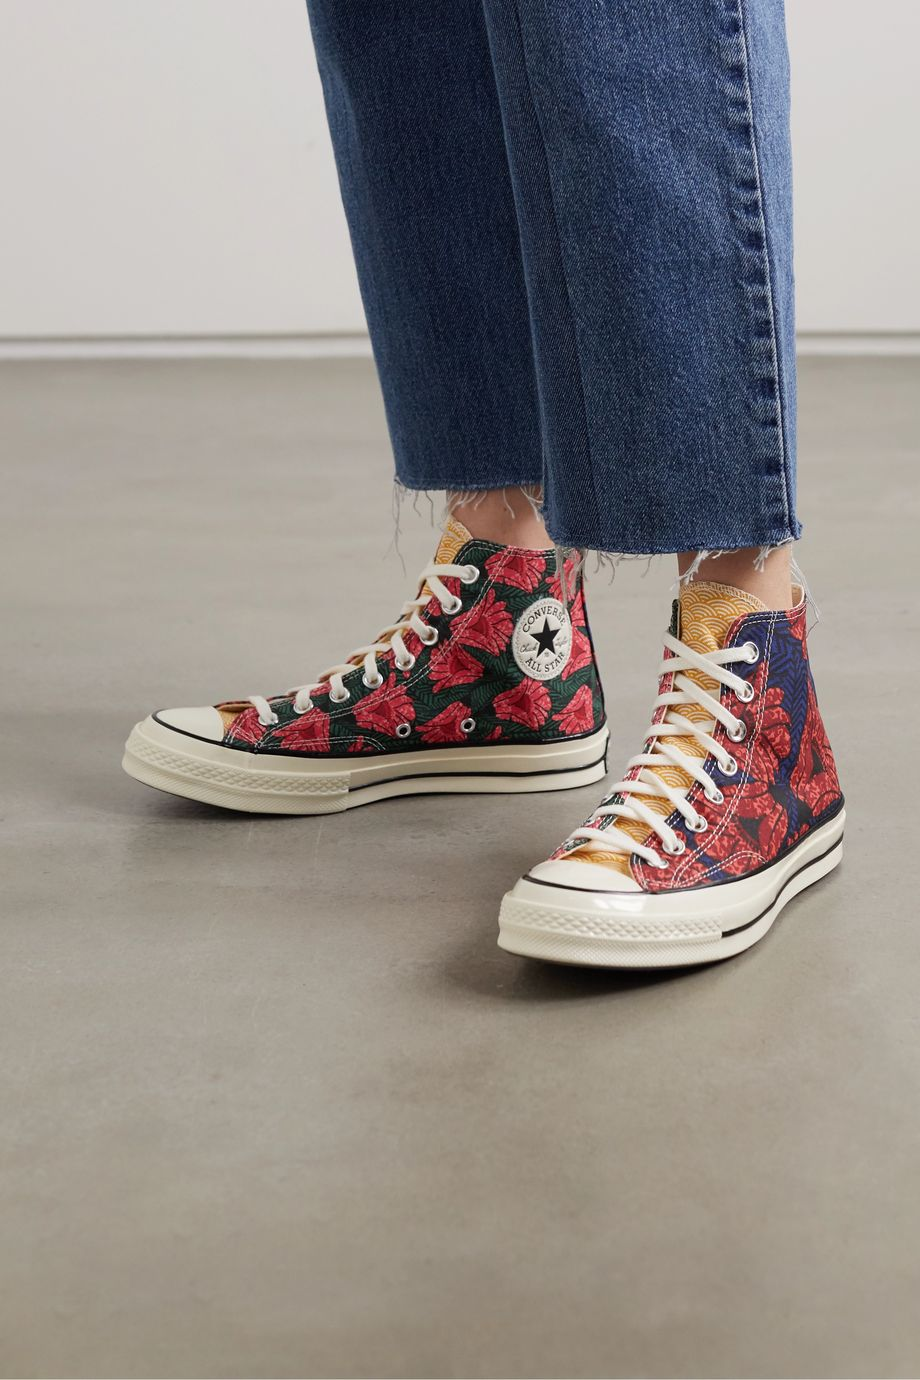 Converse Chuck 70 floral-print canvas high-top sneakers